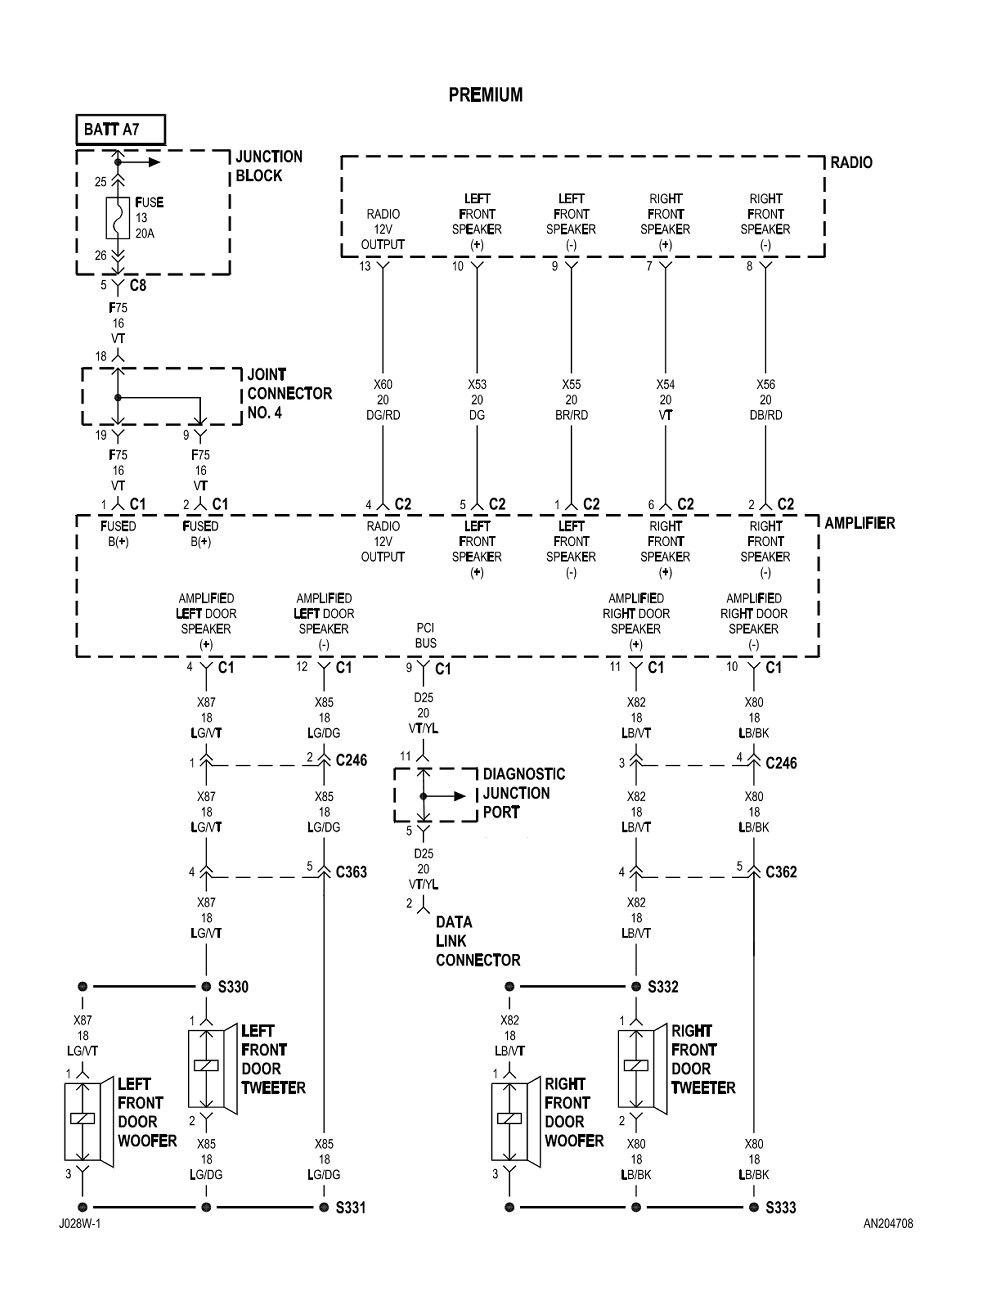 2004 dodge dakota radio wiring diagram Collection-Labeled 2004 dodge durango radio wiring diagram 14-e